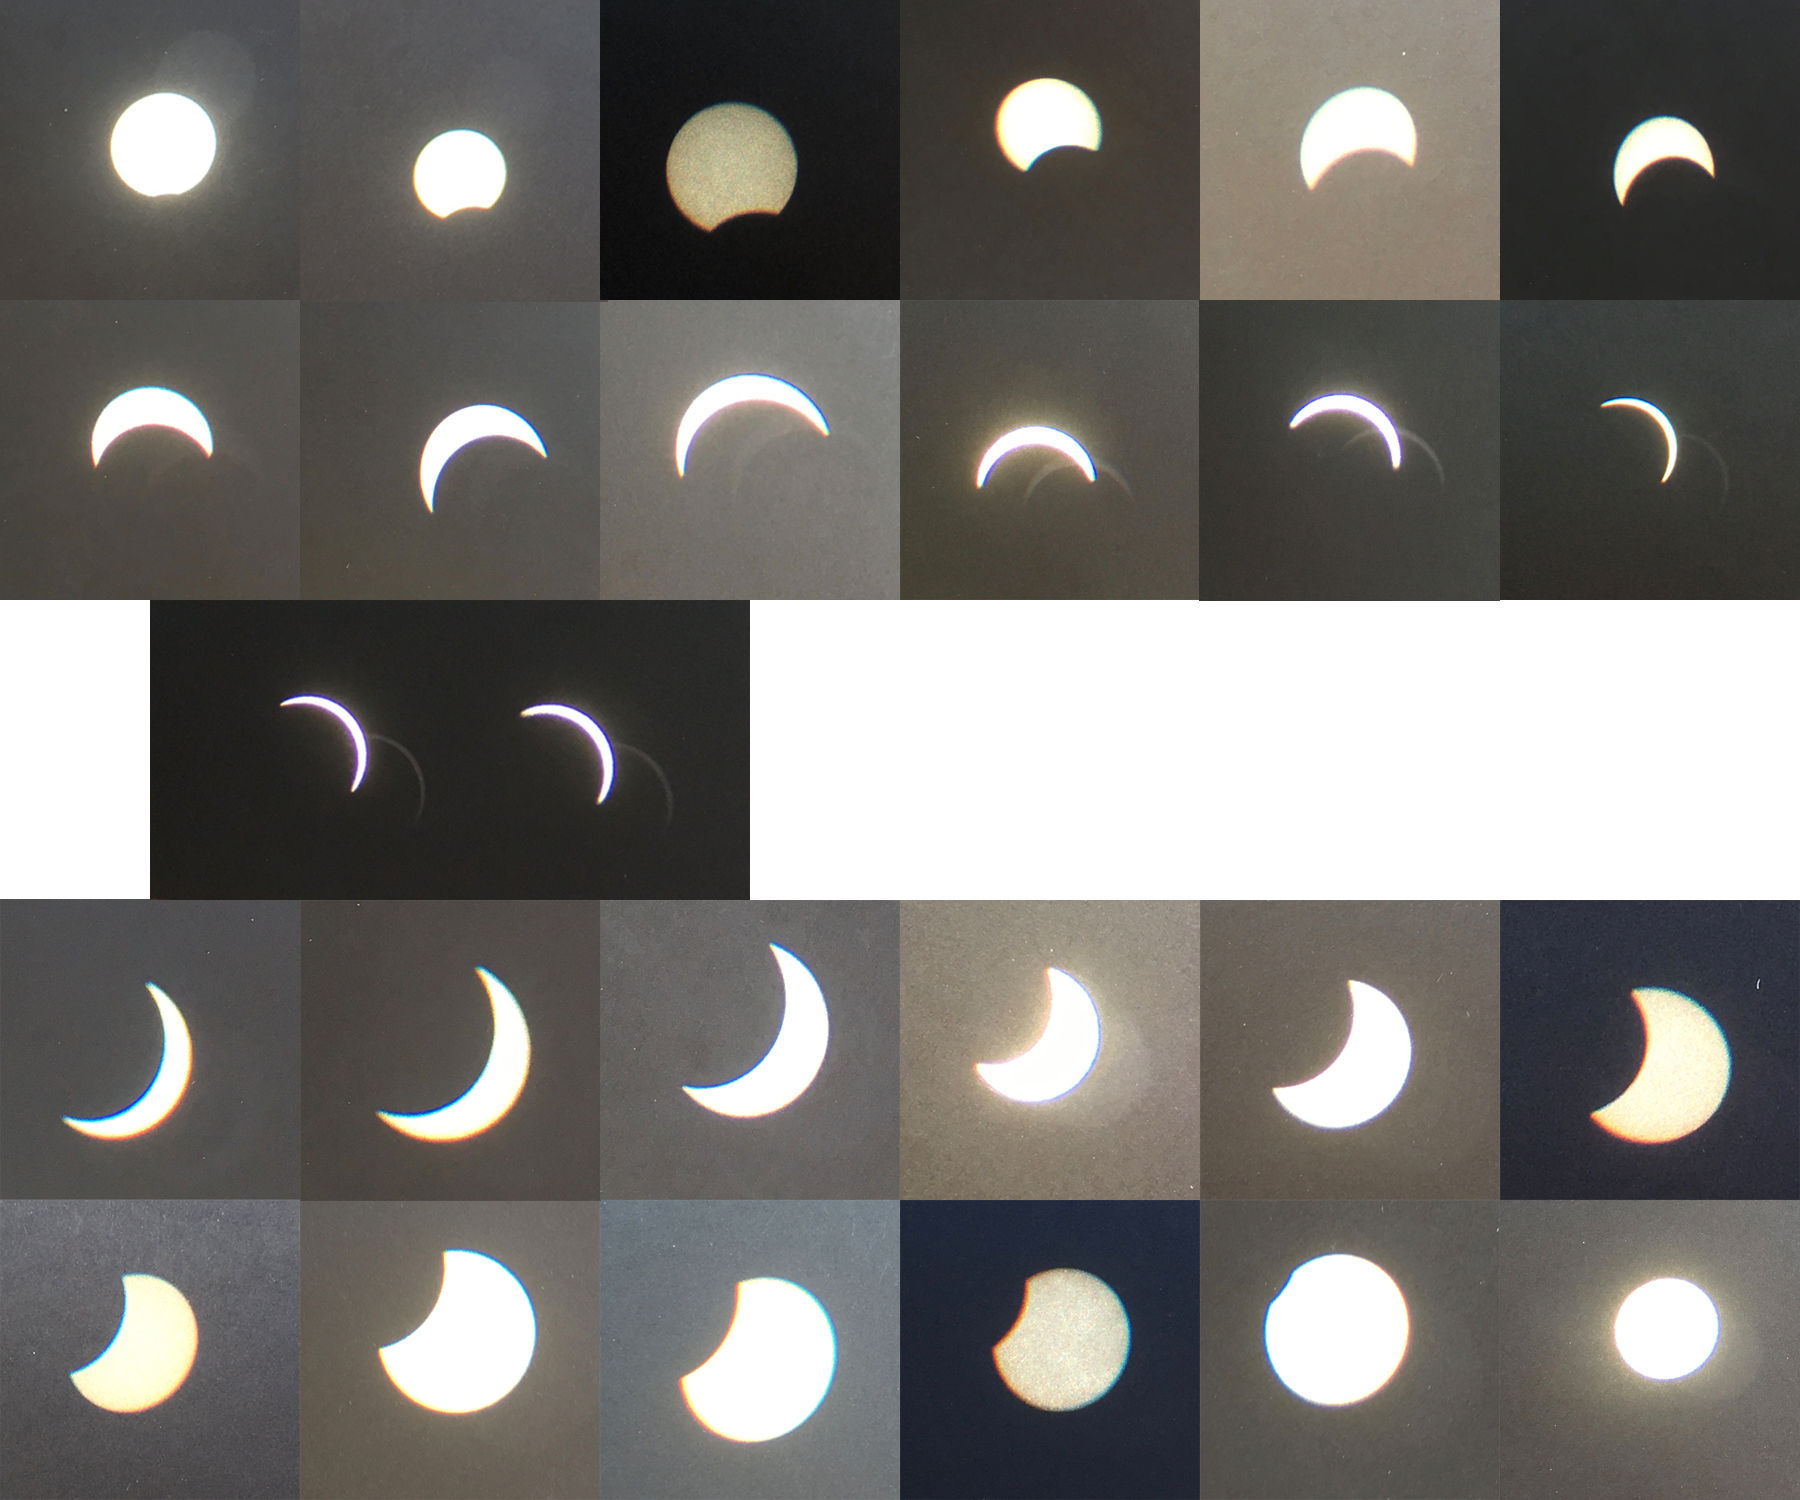 August 21, 2017 solar eclipse from Fort Collins, Colorado, USA.